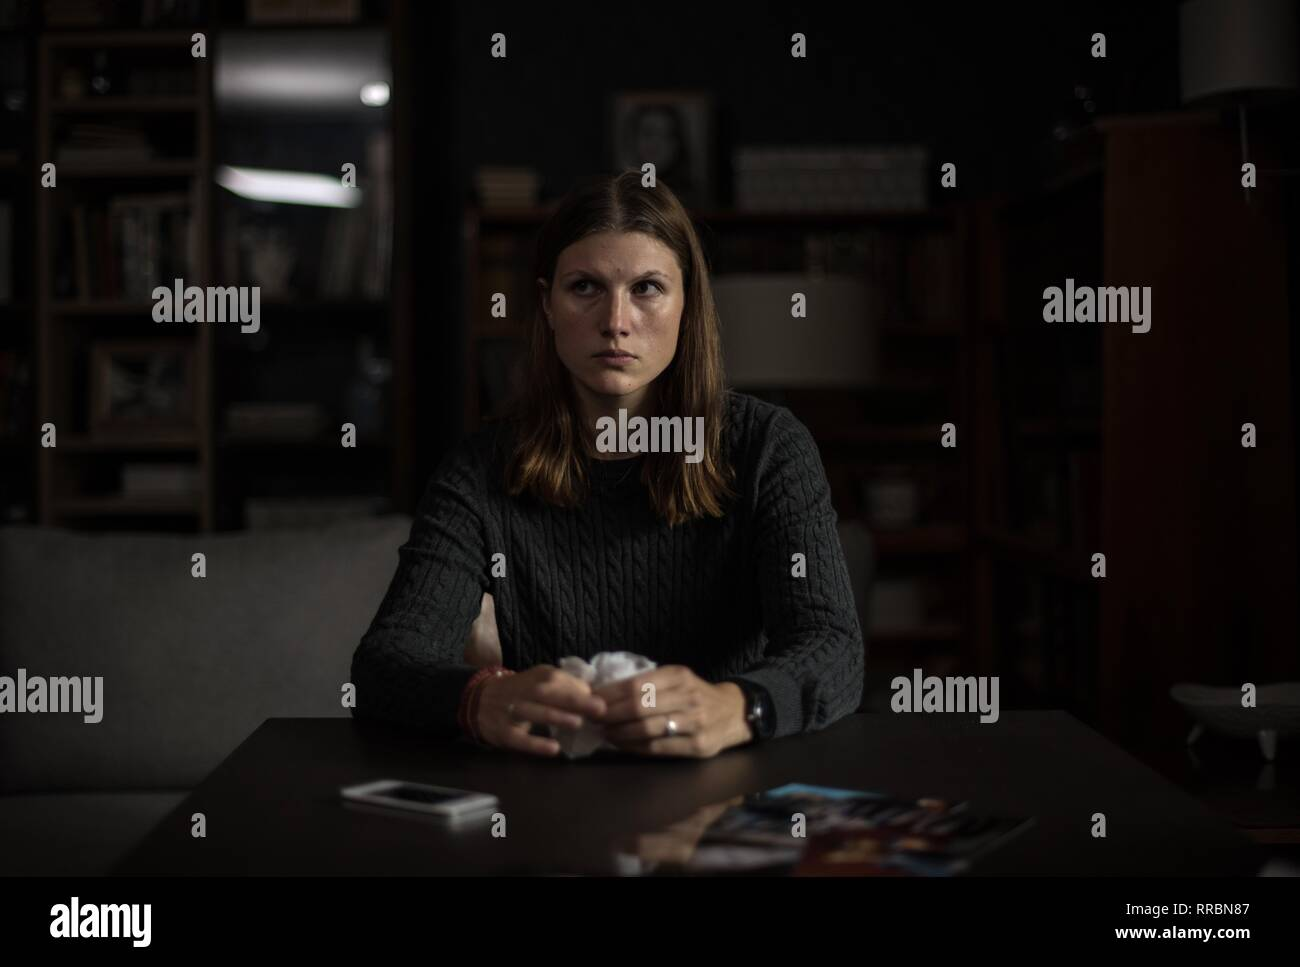 LOVELESS, MARYANA SPIVAK, 2017 - Stock Image